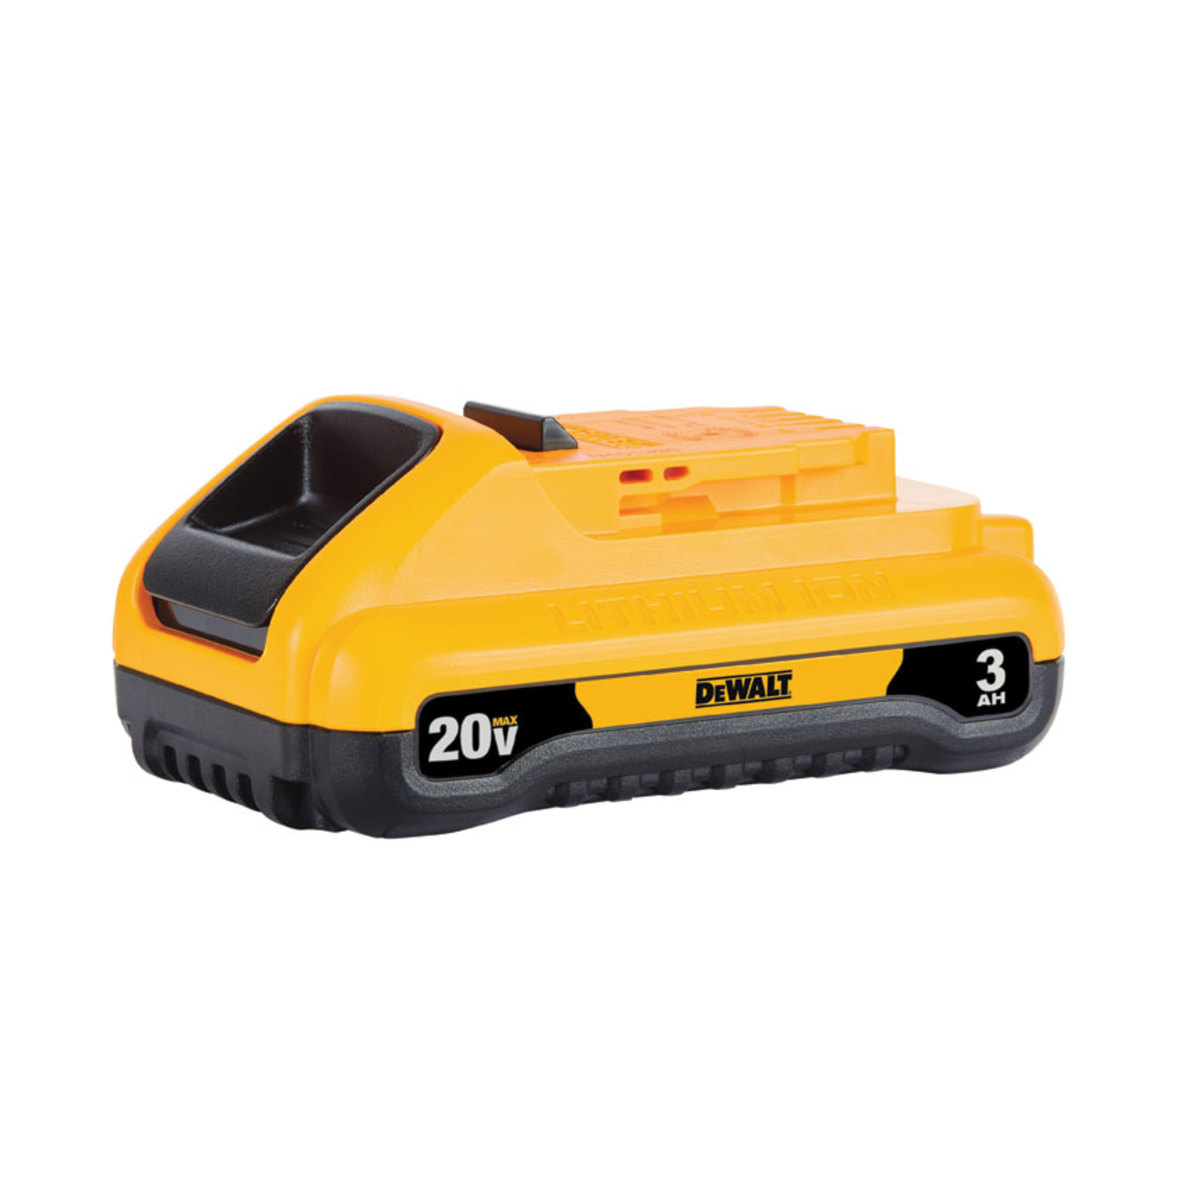 dewalt-3.0-ah-battery-model-dcb230